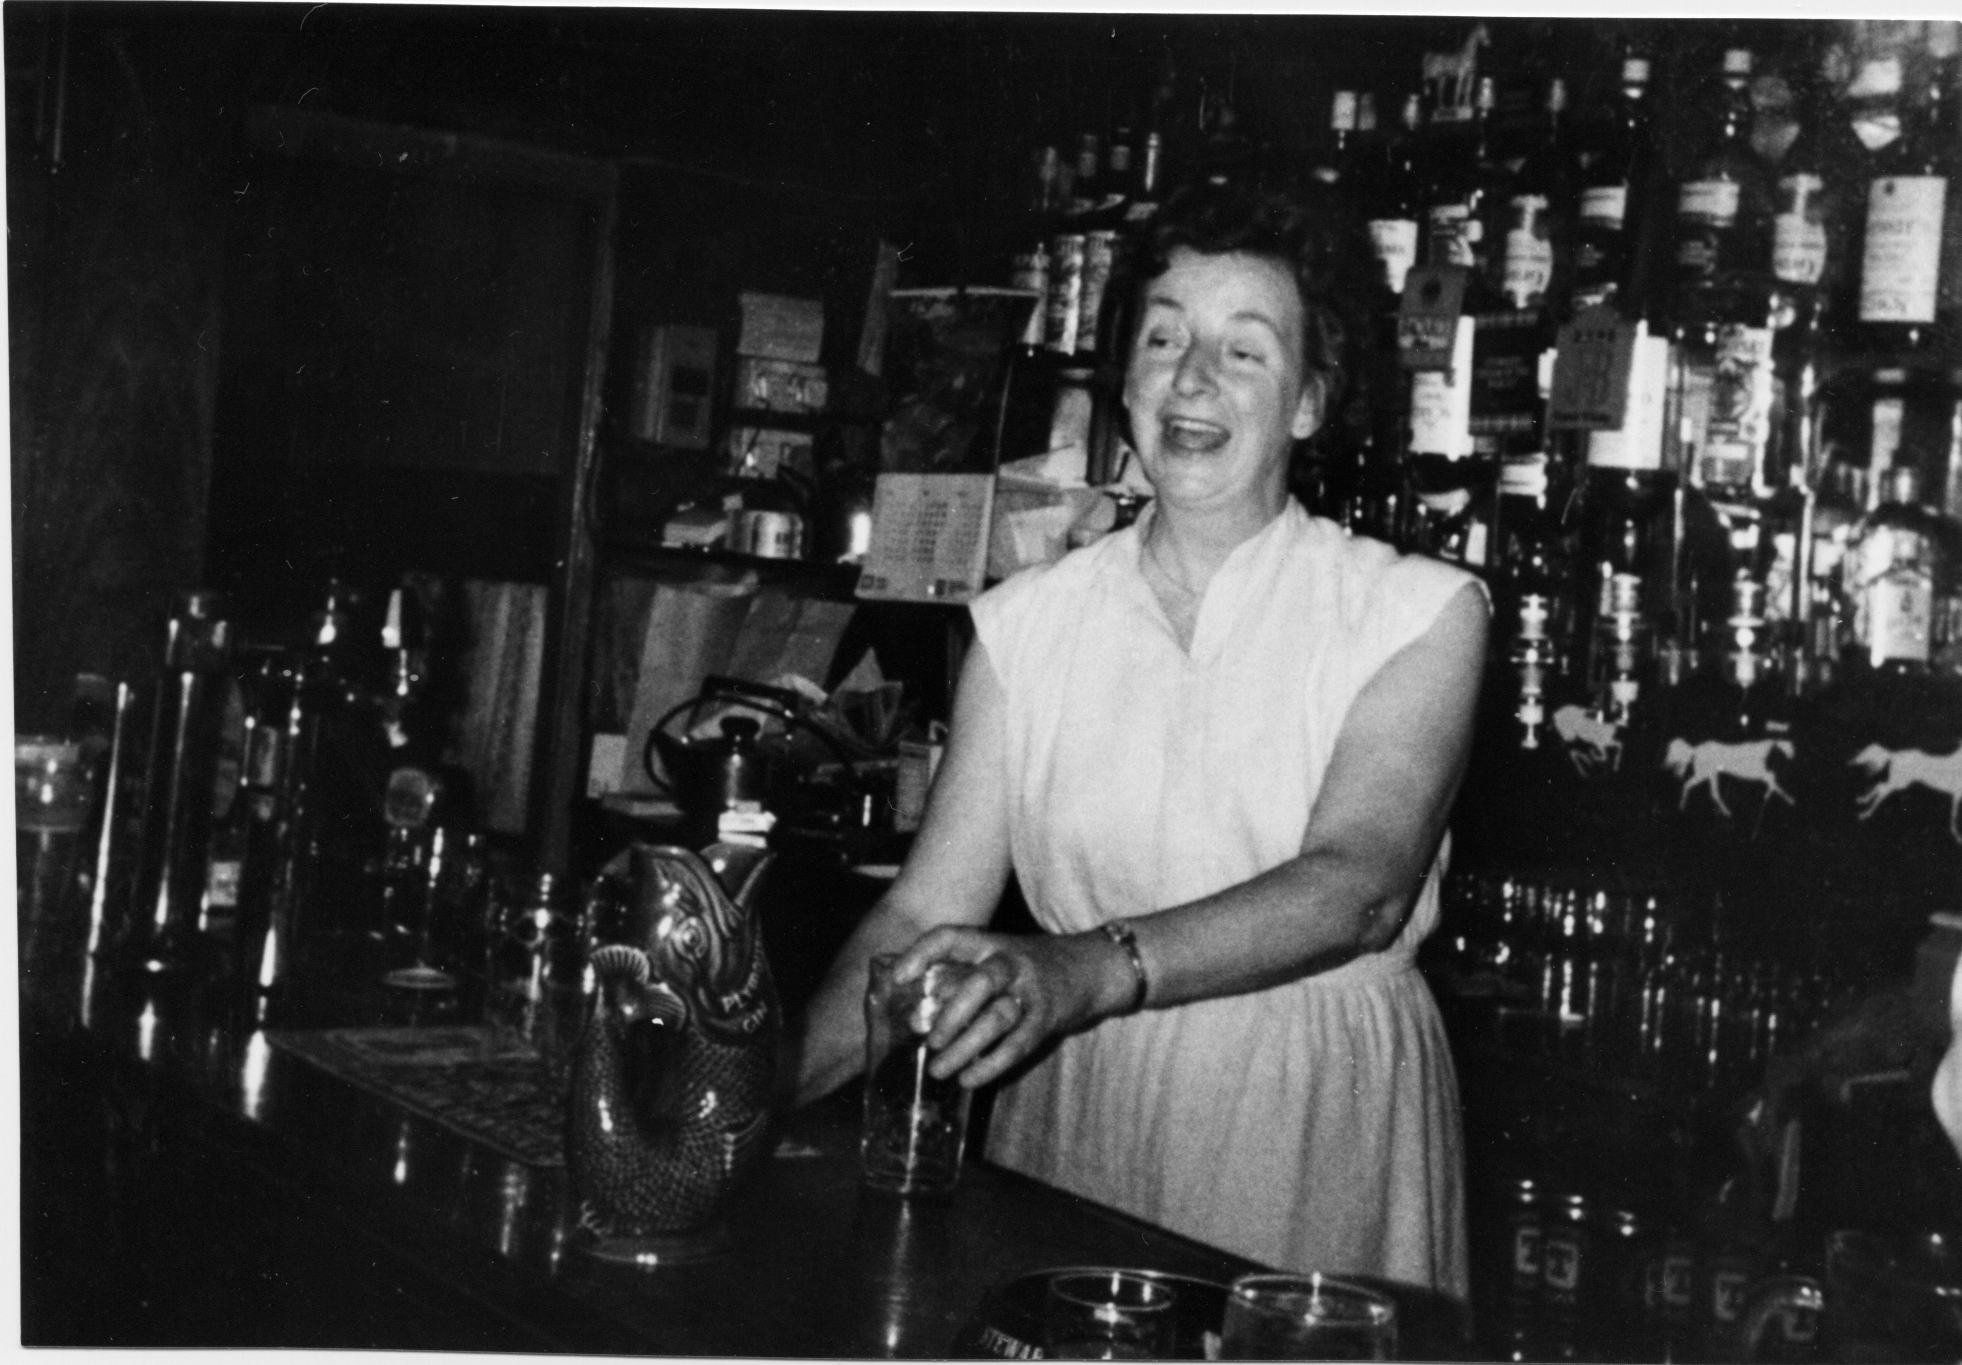 Barmaid Working At The Bar Of The White Horse, late 1970s